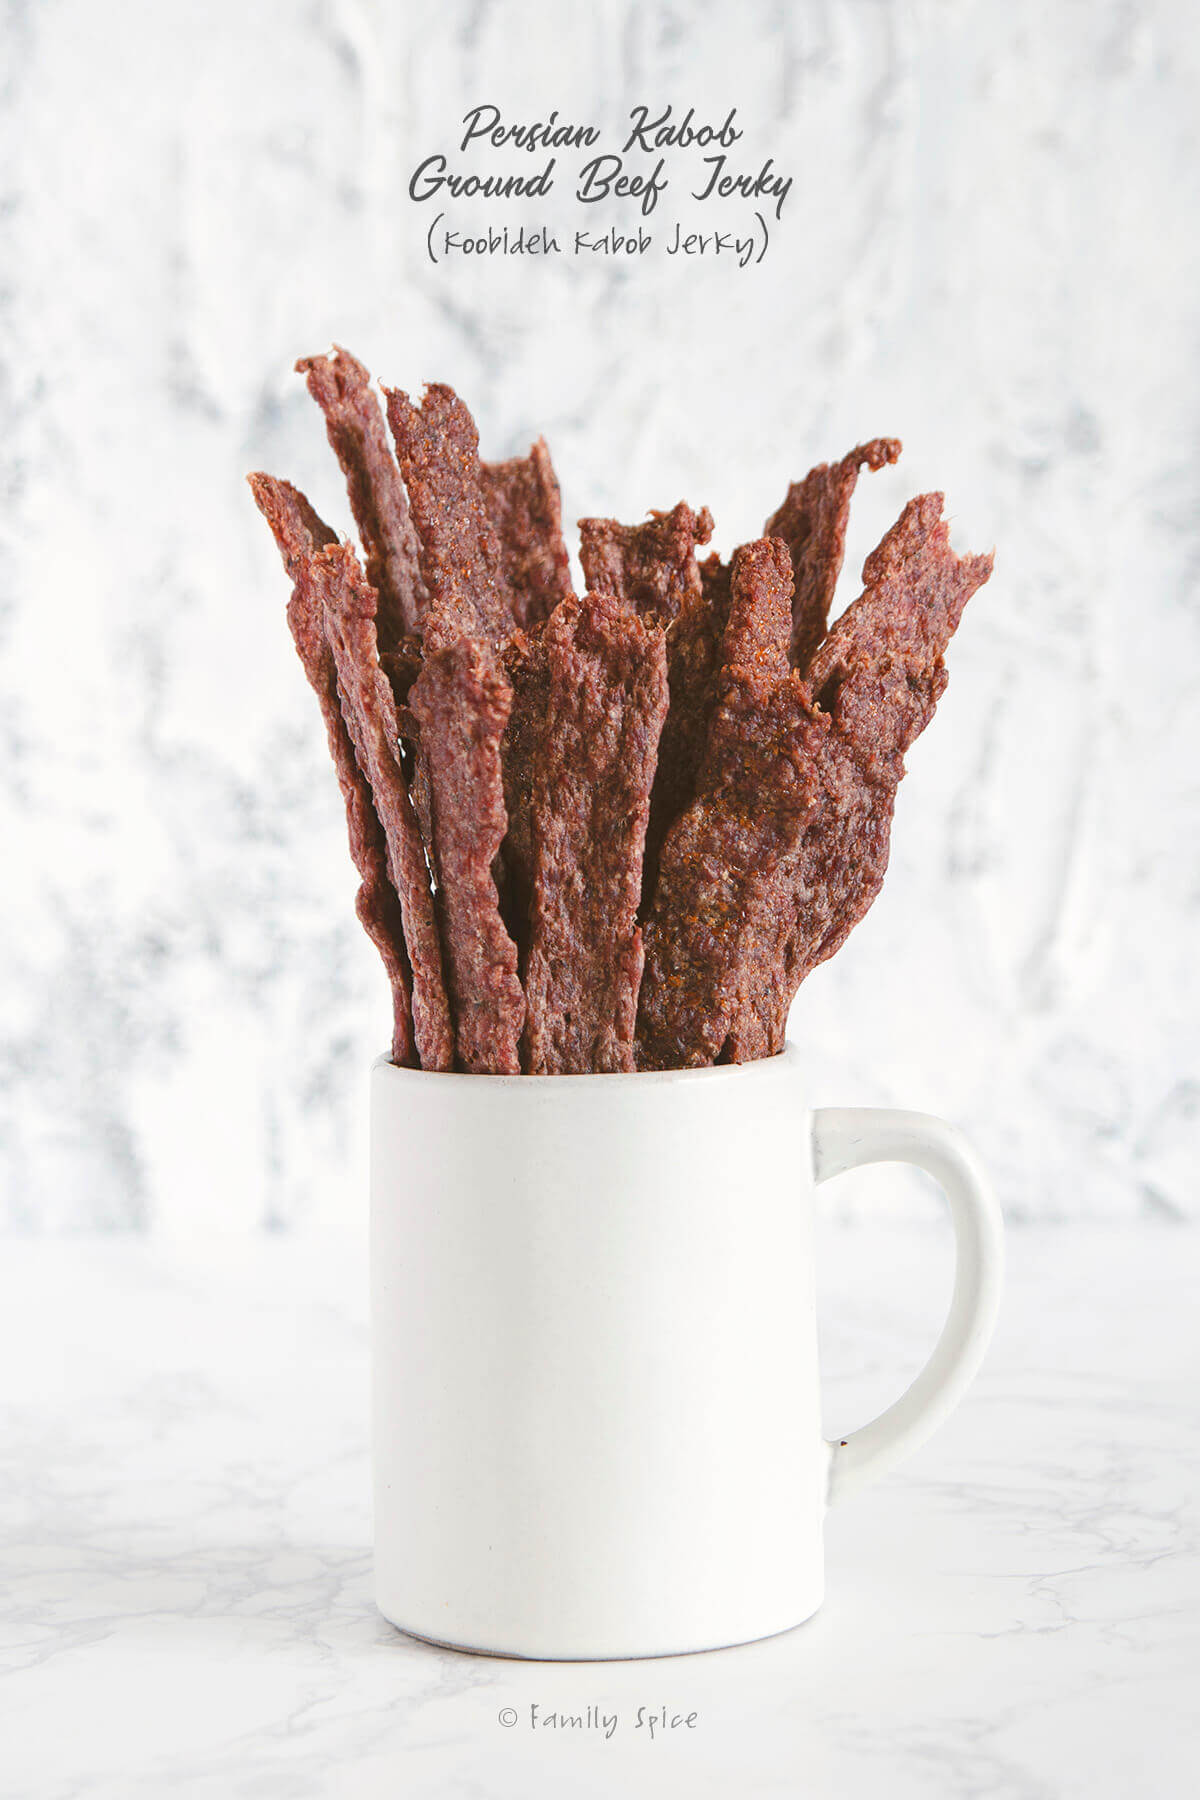 Sticks of ground beef jerky sticking out of a white ceramic mug by FamilySpice.com